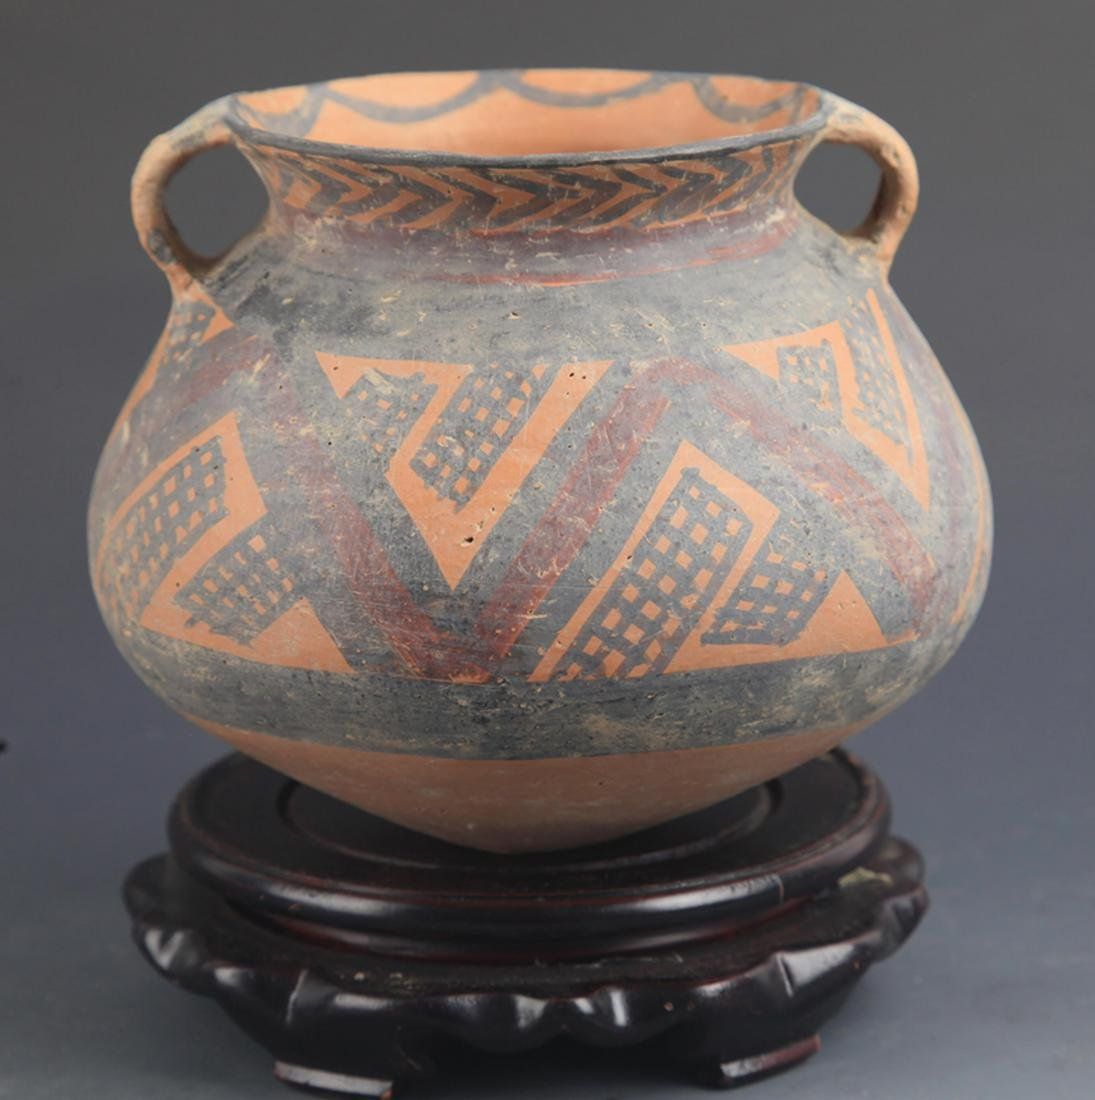 A YANG YUN CULTURE STYLE POTTERY JAR